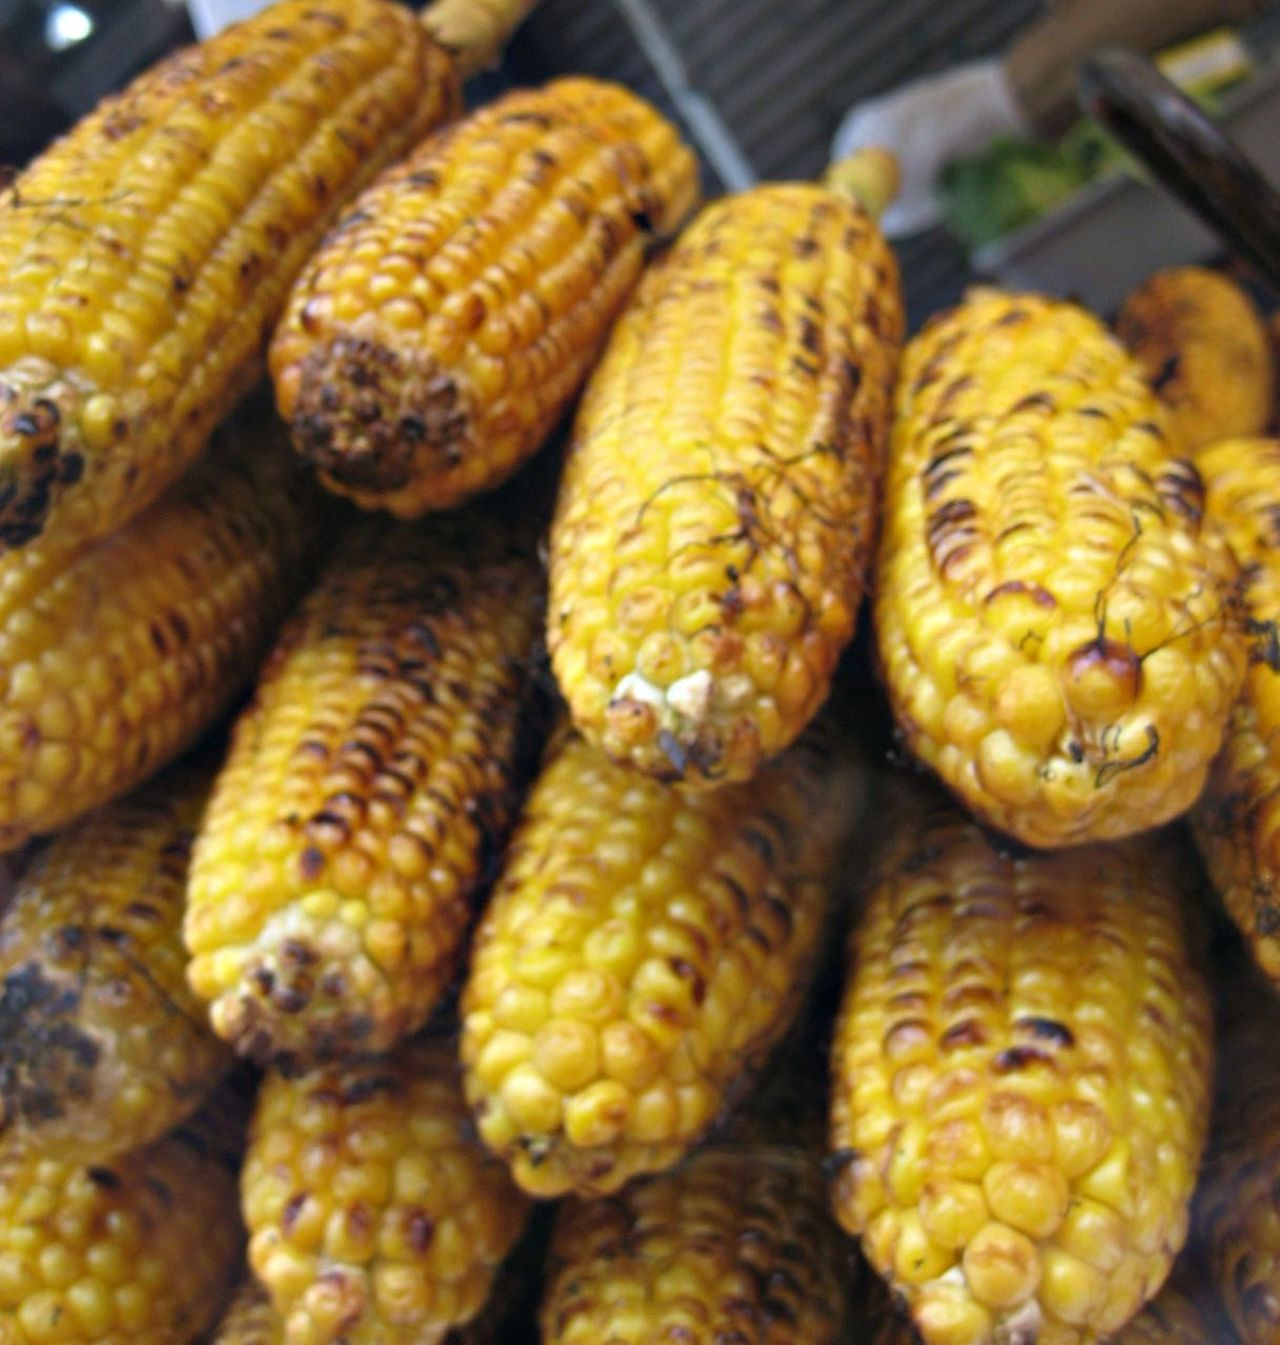 Abundance Charred Charred Corn Close-up Corn Corn On The Cob Food Food And Drink Food Photography Food Porn Freshness Healthy Eating Little Italy Little Italy NYC Market San Gennaro San Gennaro Festival Street Fair Yum Yummy Yummy Food Foodie Foodphotography Foodporn